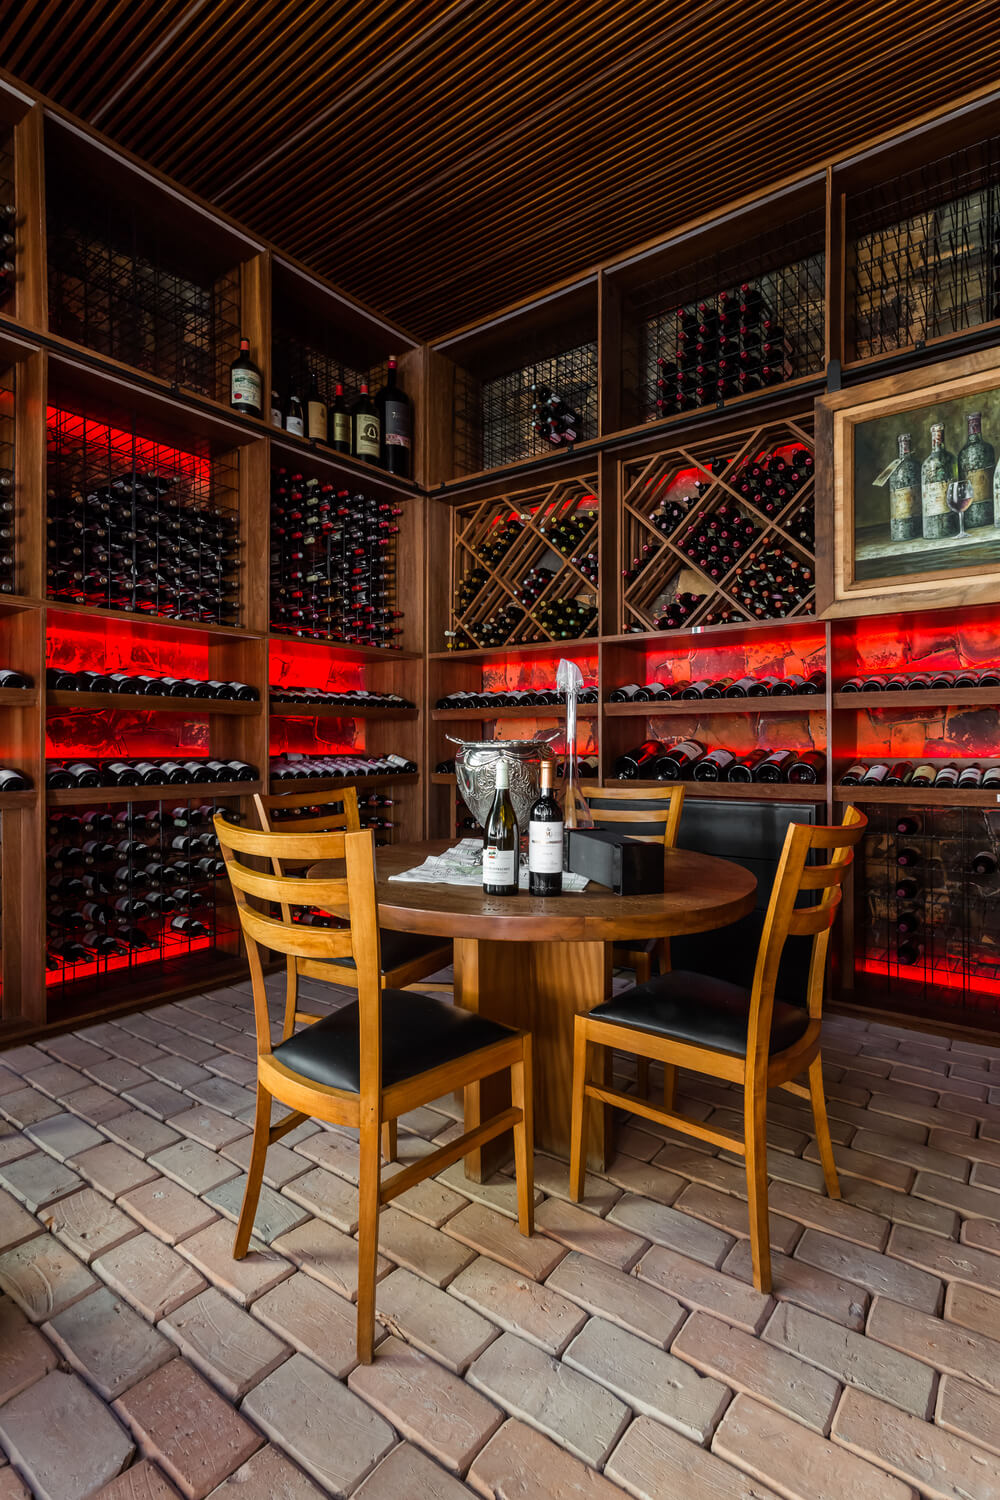 The wine cellar has a wooden dining set for a tasting area surrounded by built-in racks of wines.